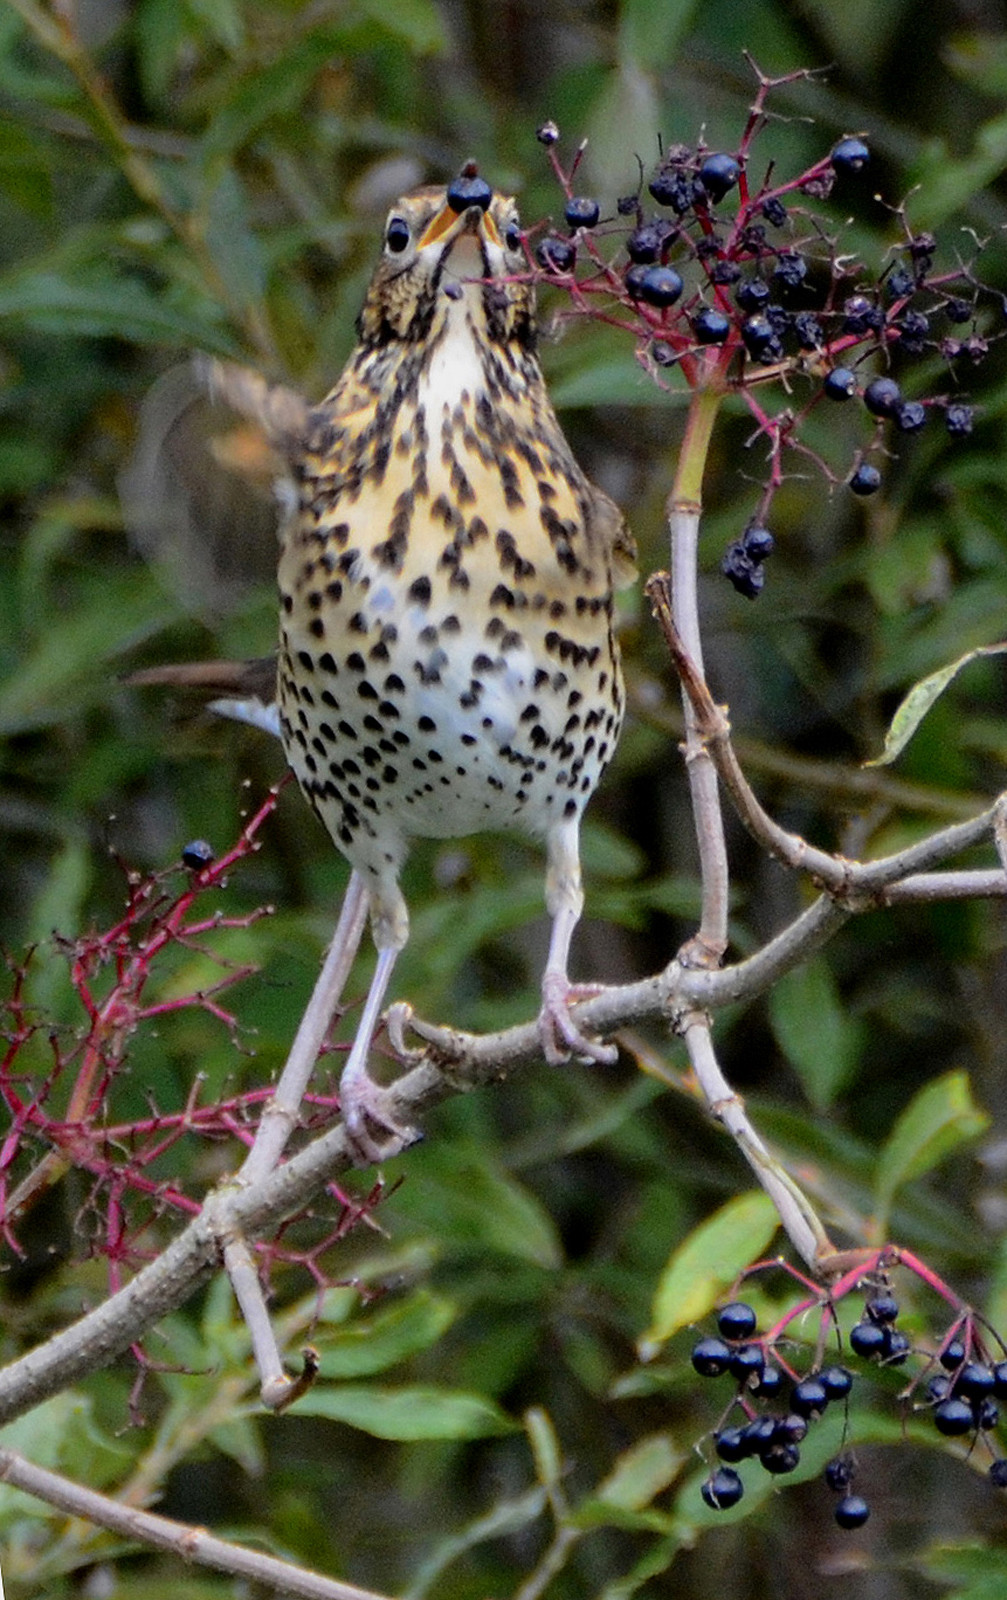 Thrush feeding on berries